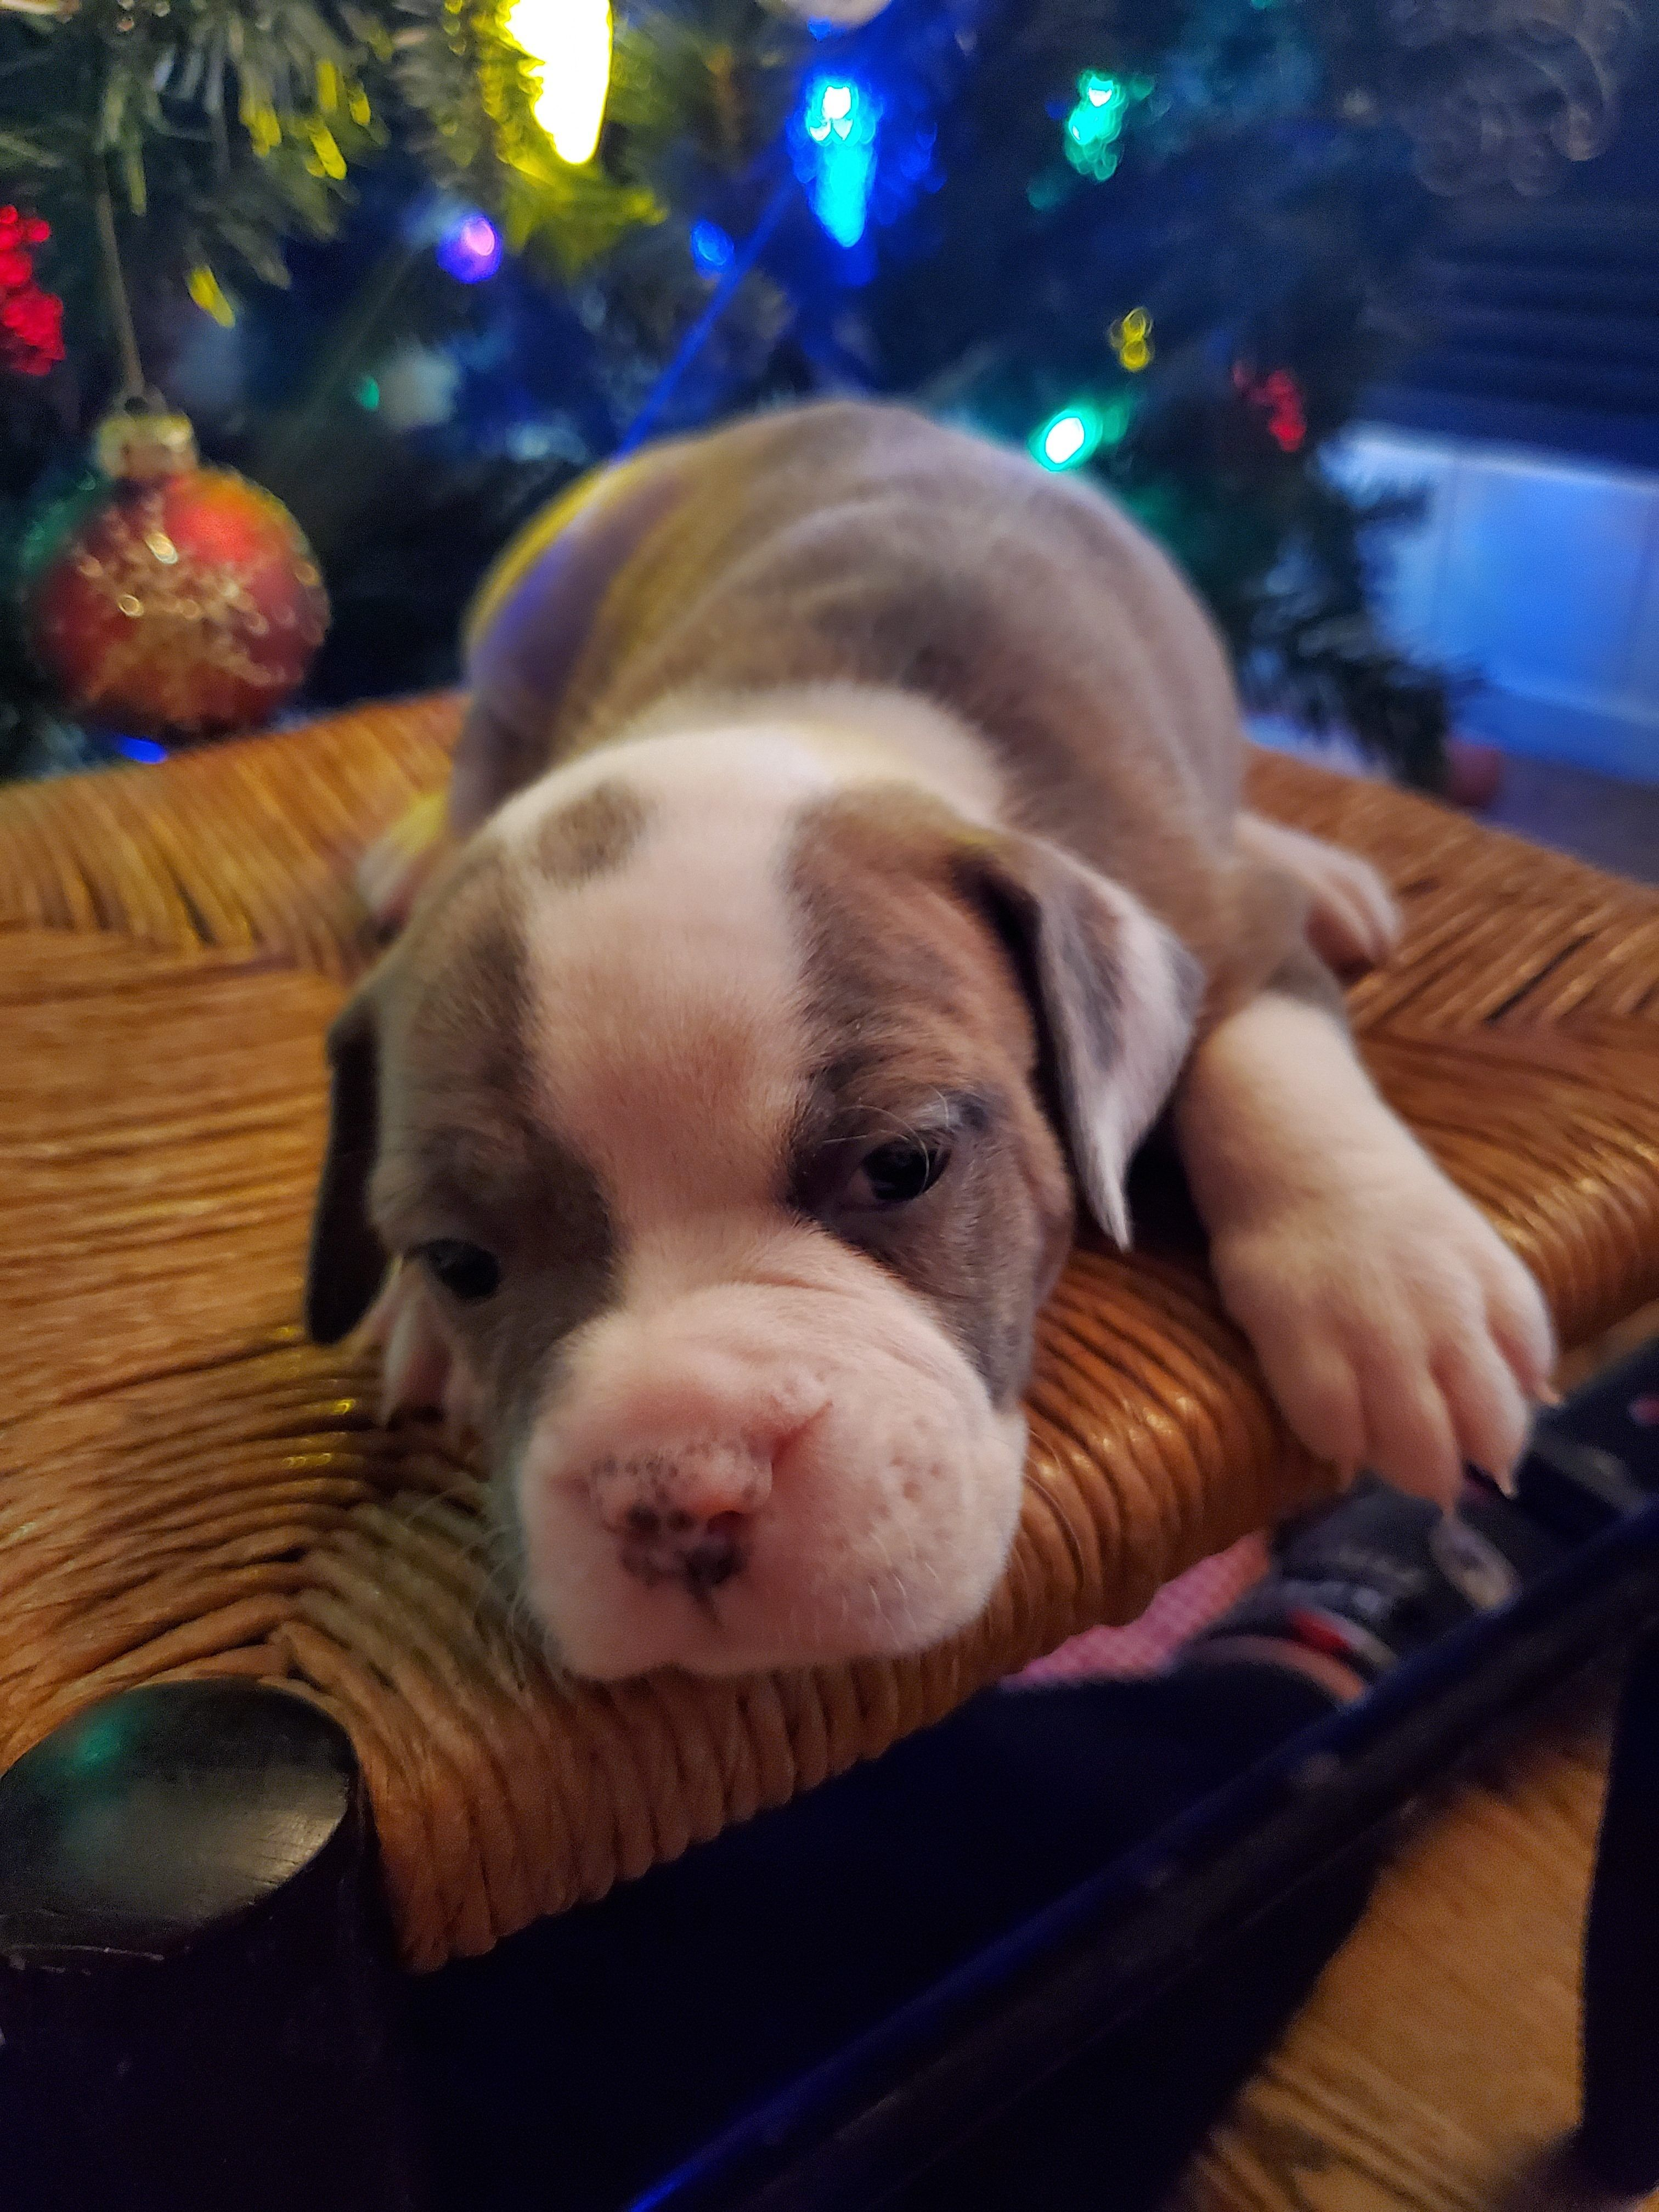 Breed Olde English Bulldogge Gender Female Registry Ioeba Personality Charismatic Date Available Dec 23 2019 Special Puppies Puppy Finder Puppies For Sale